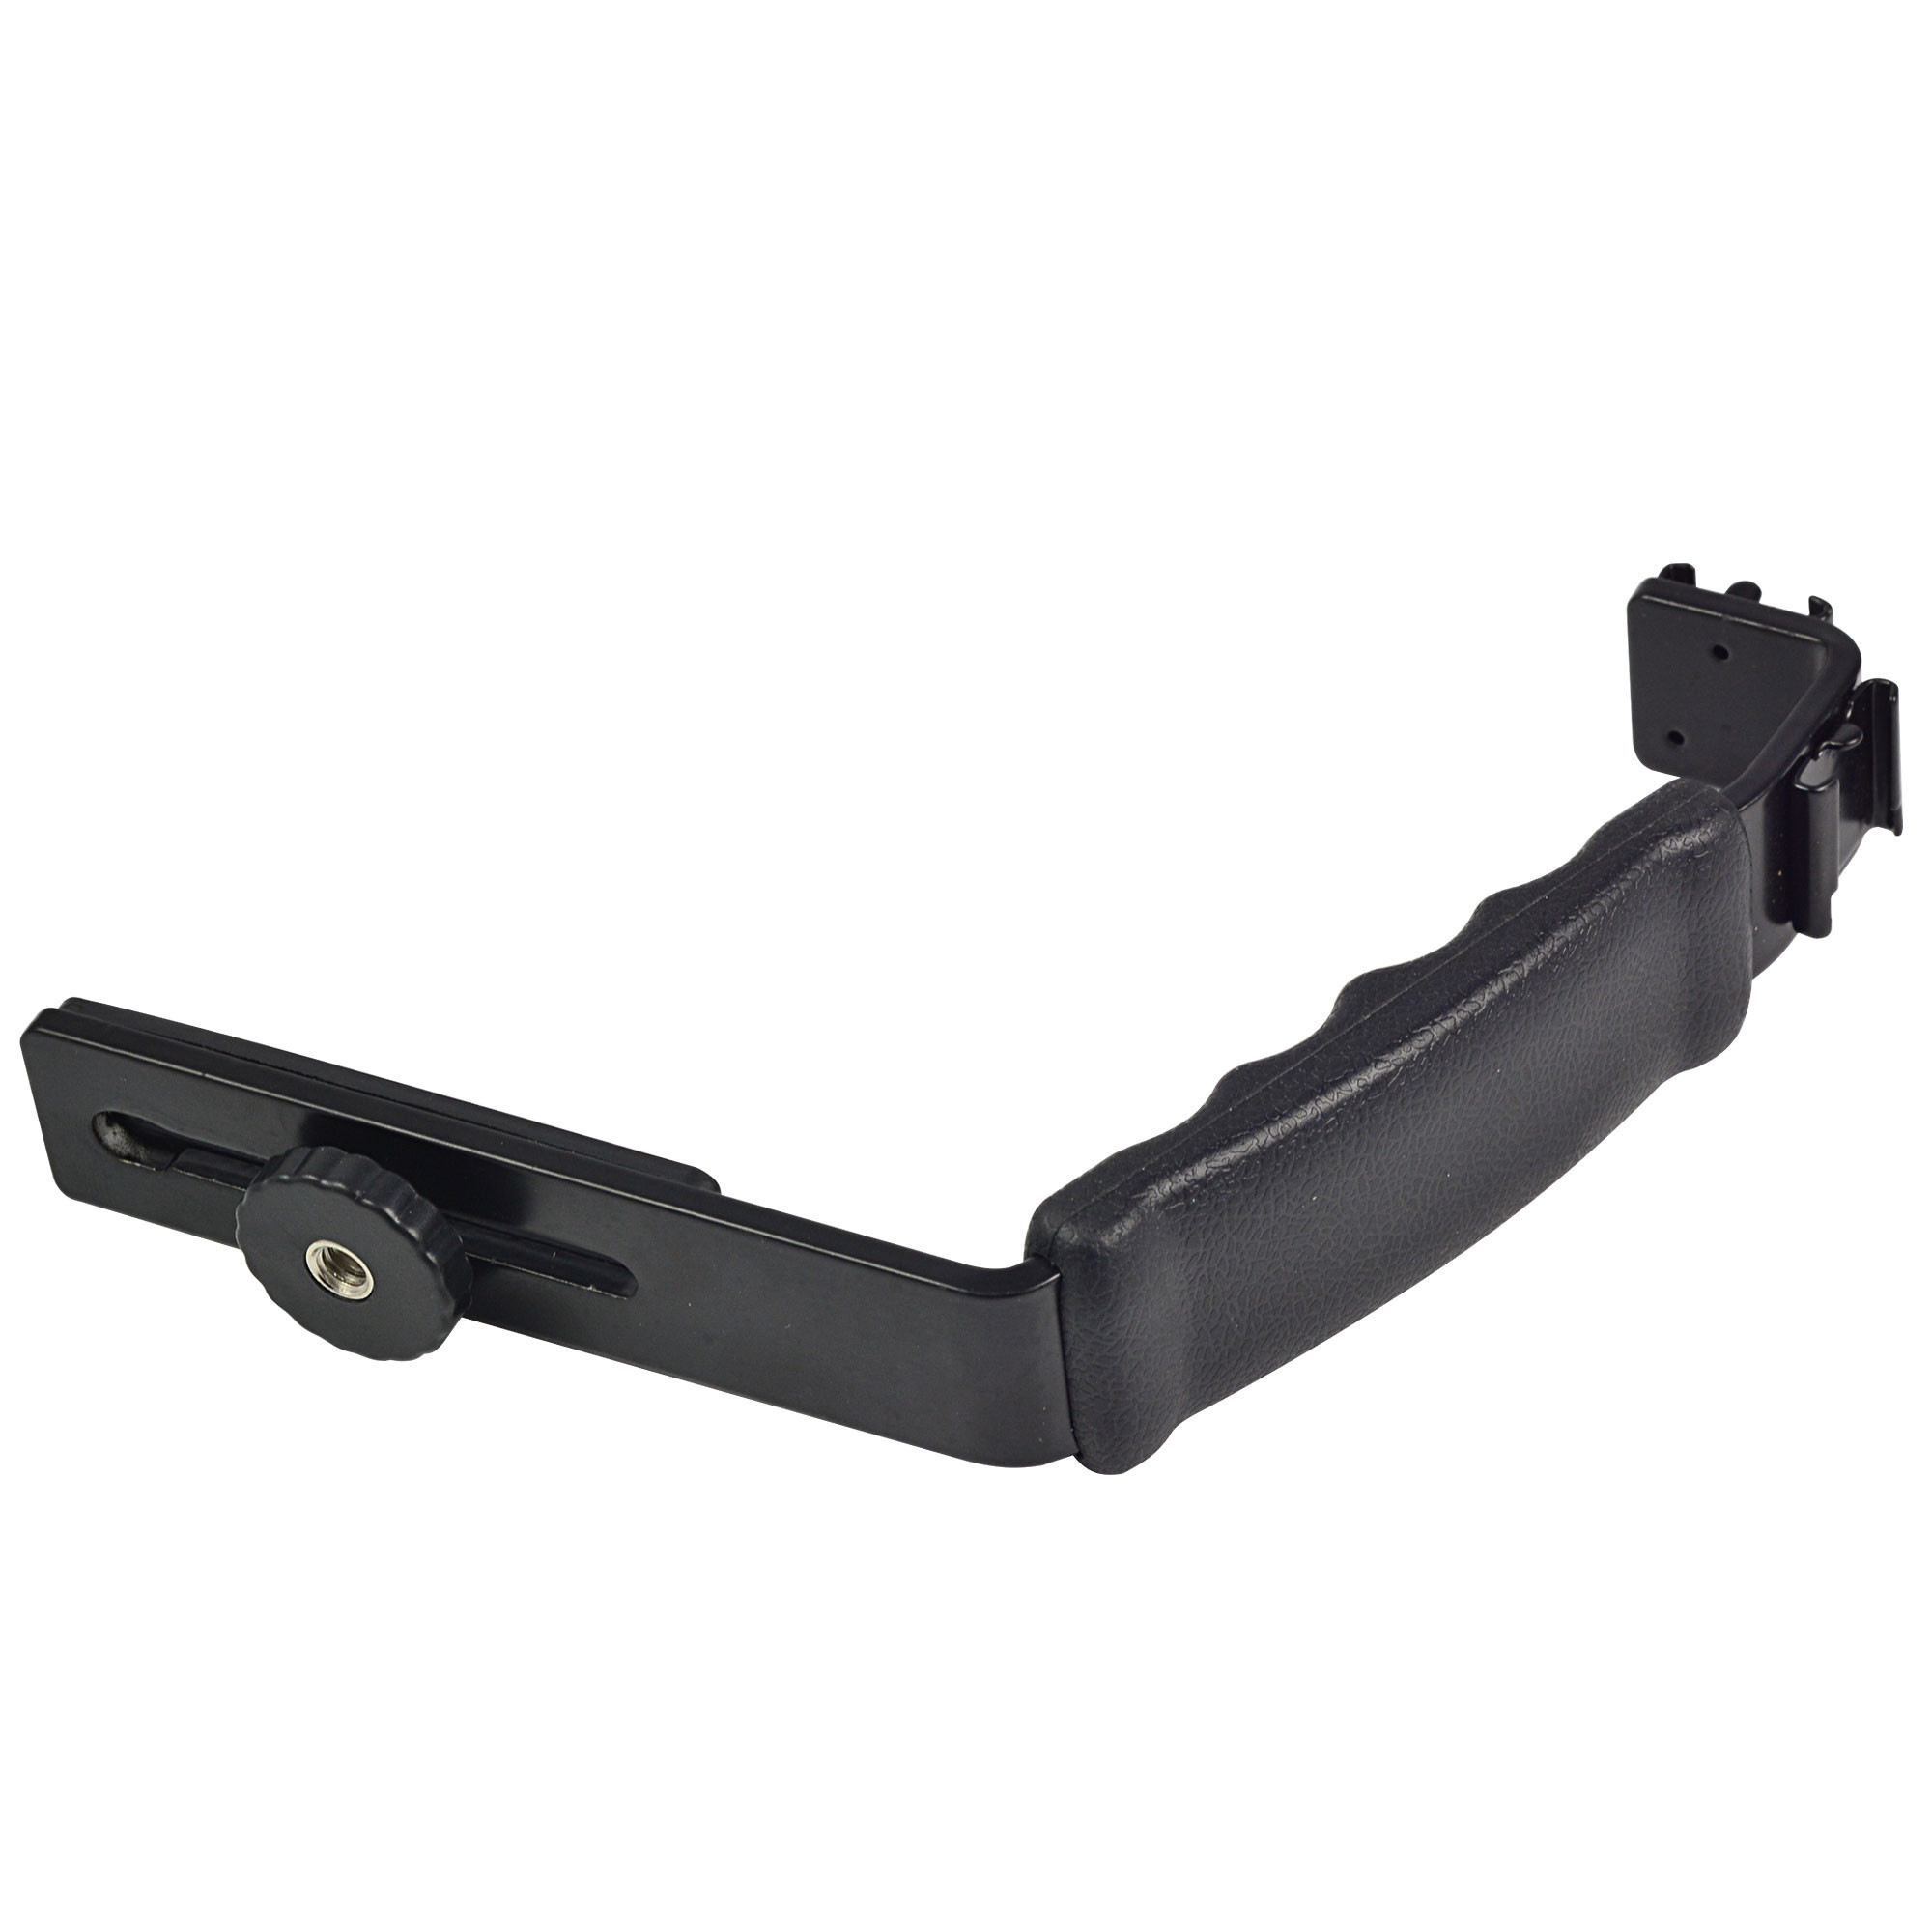 Mengsphoto Mengs 174 Universal Camera Grip L Bracket With 2